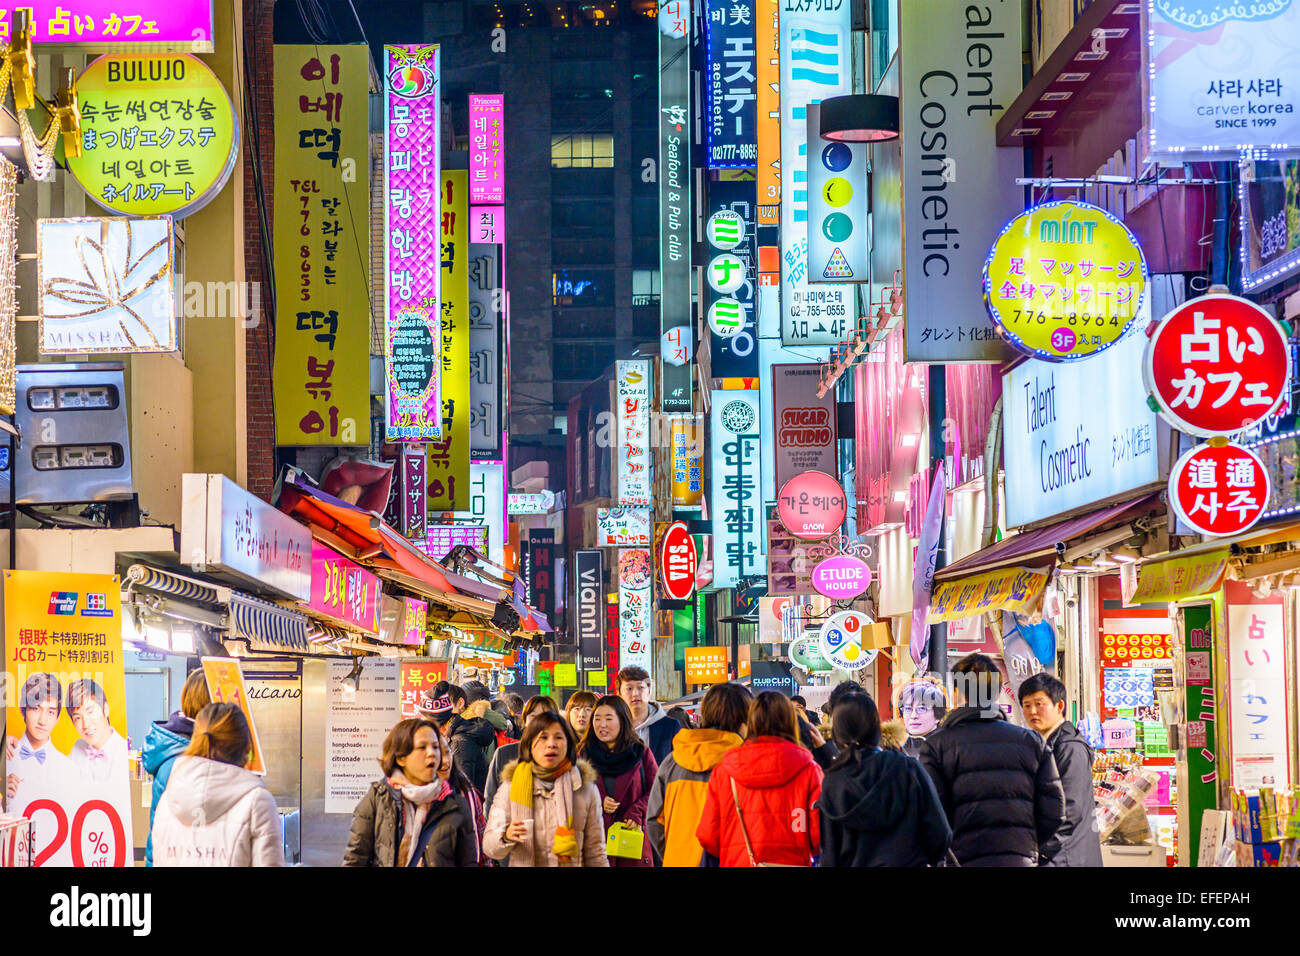 Crowds enjoy the Myeong-Dong district nightlife in Seoul. - Stock Image